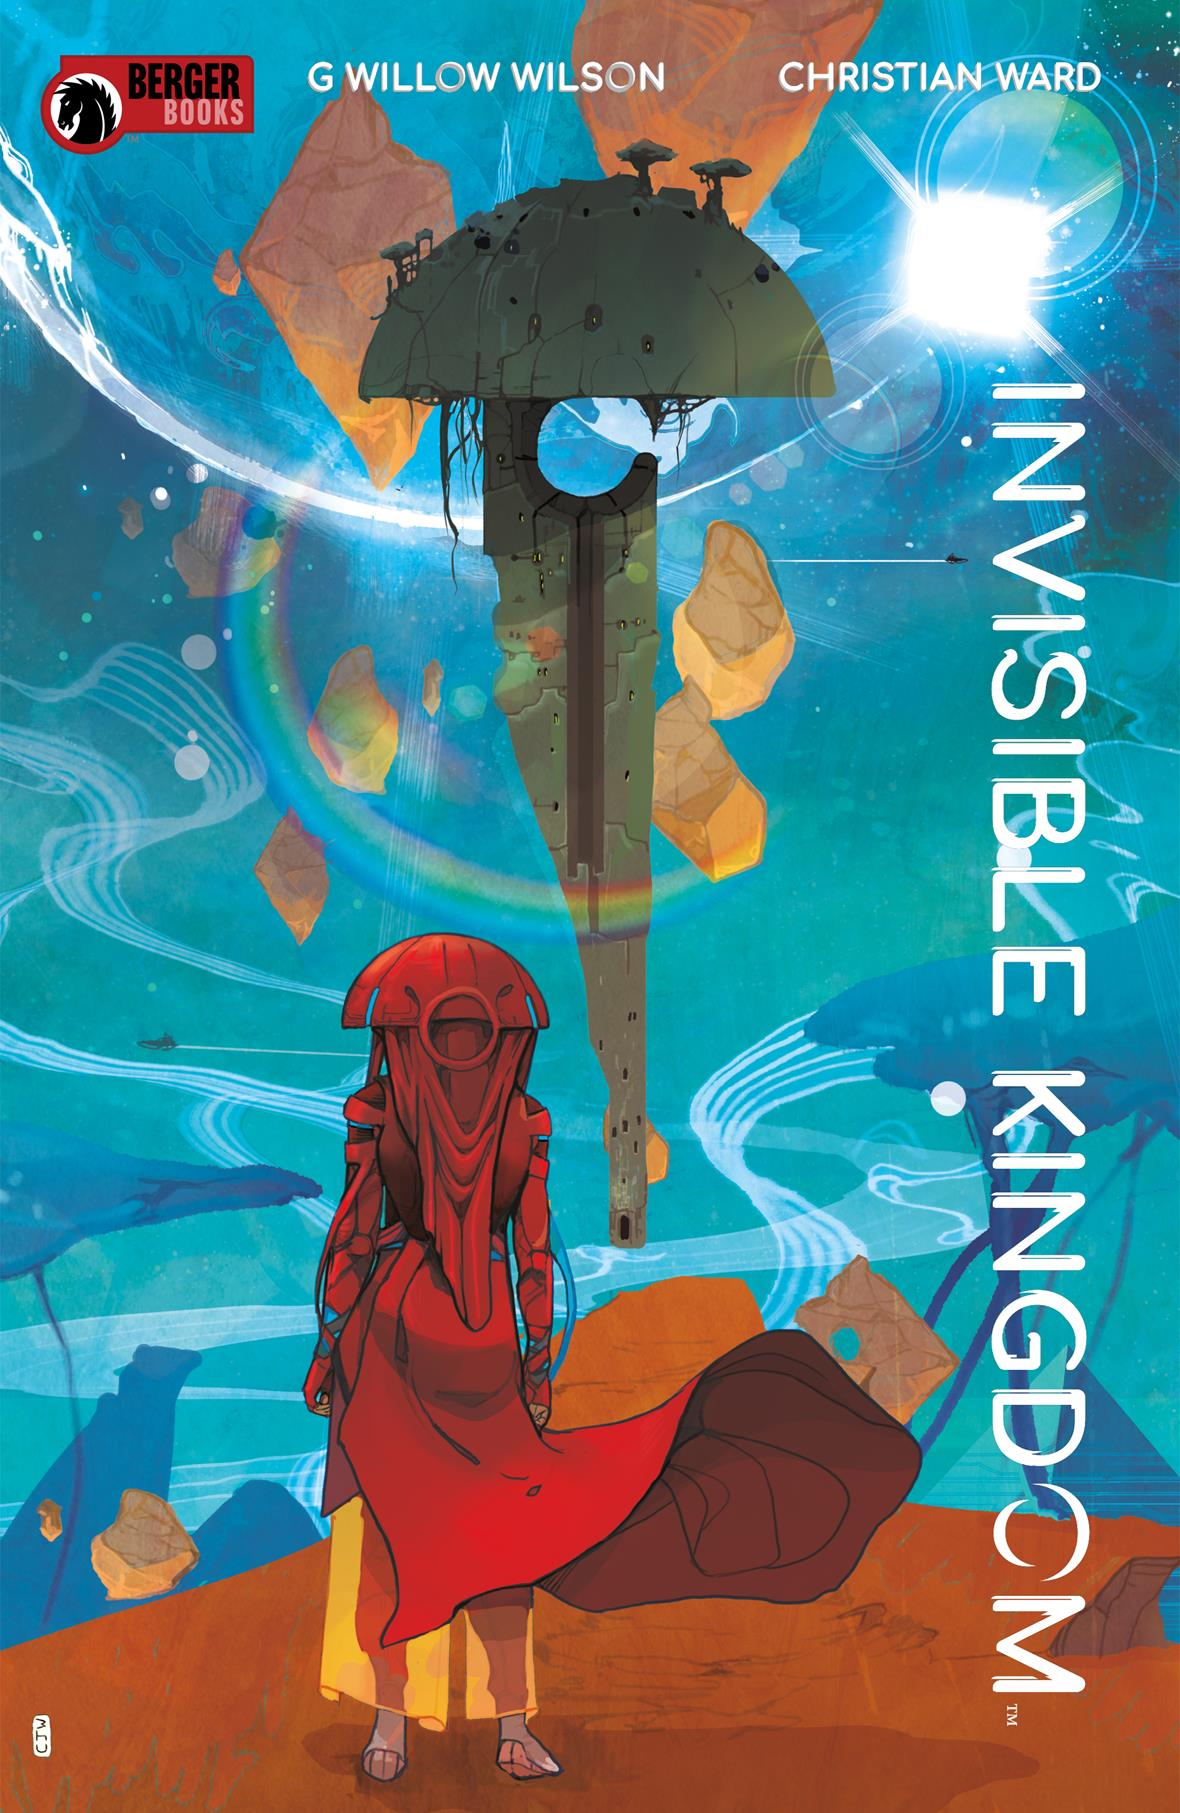 Dark Horse announces G. Willow Wilson's 'Invisible Kingdom', coming March 2019